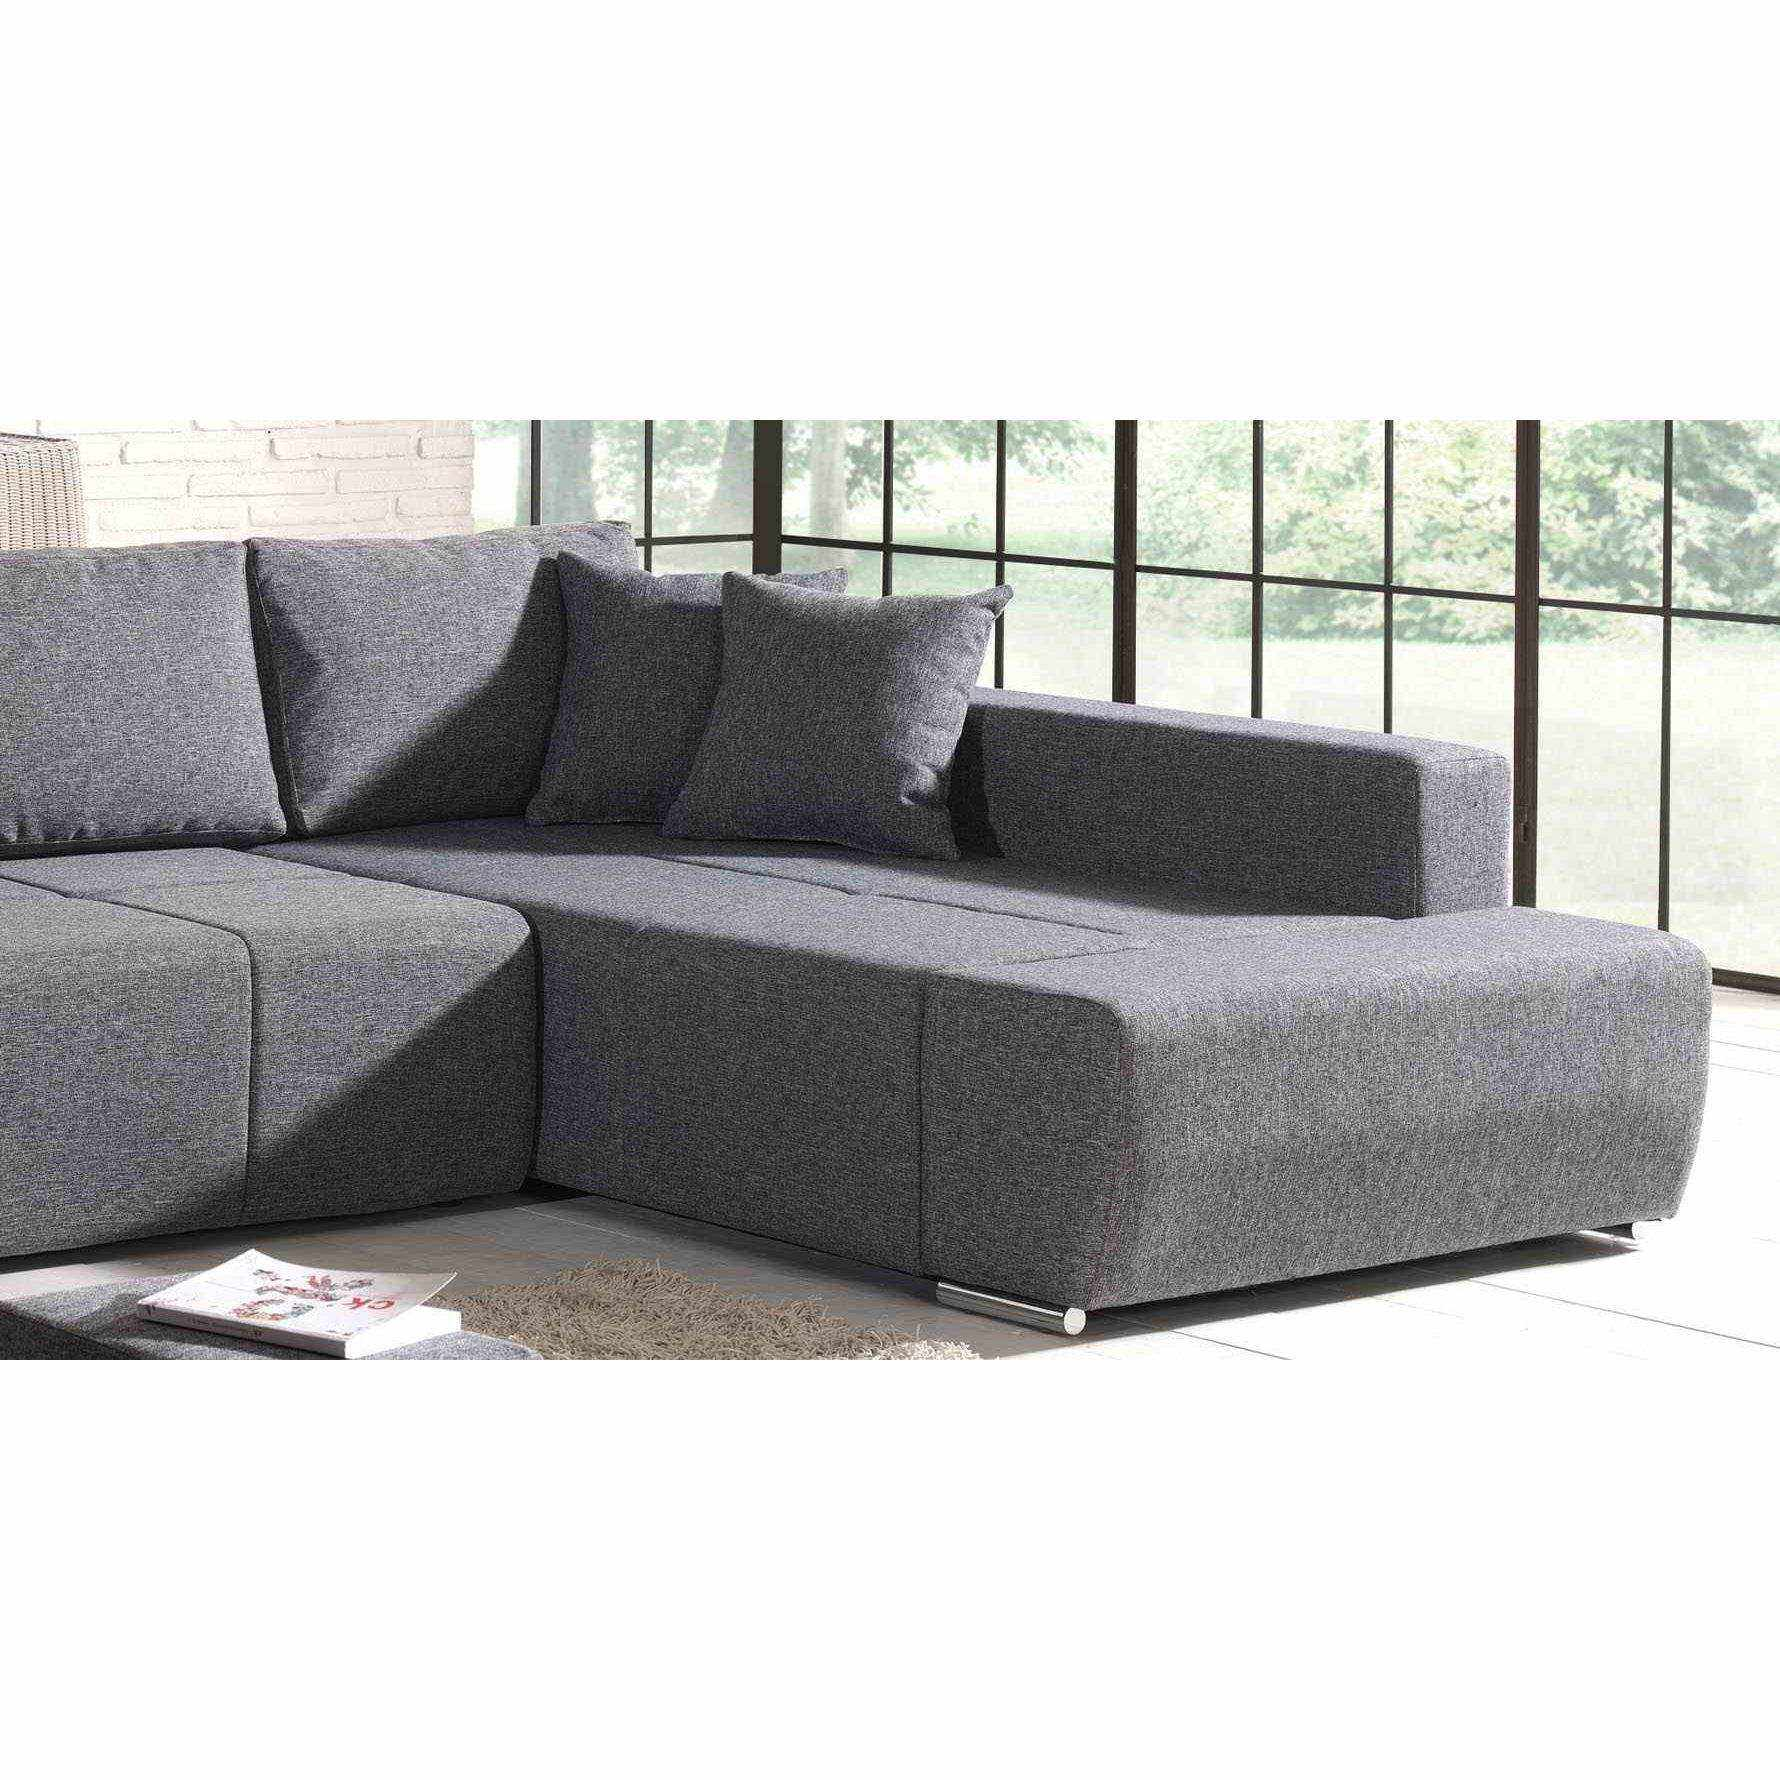 deco in paris canape d angle convertible tissu gris 2 poufs mila mila gris 3 m. Black Bedroom Furniture Sets. Home Design Ideas